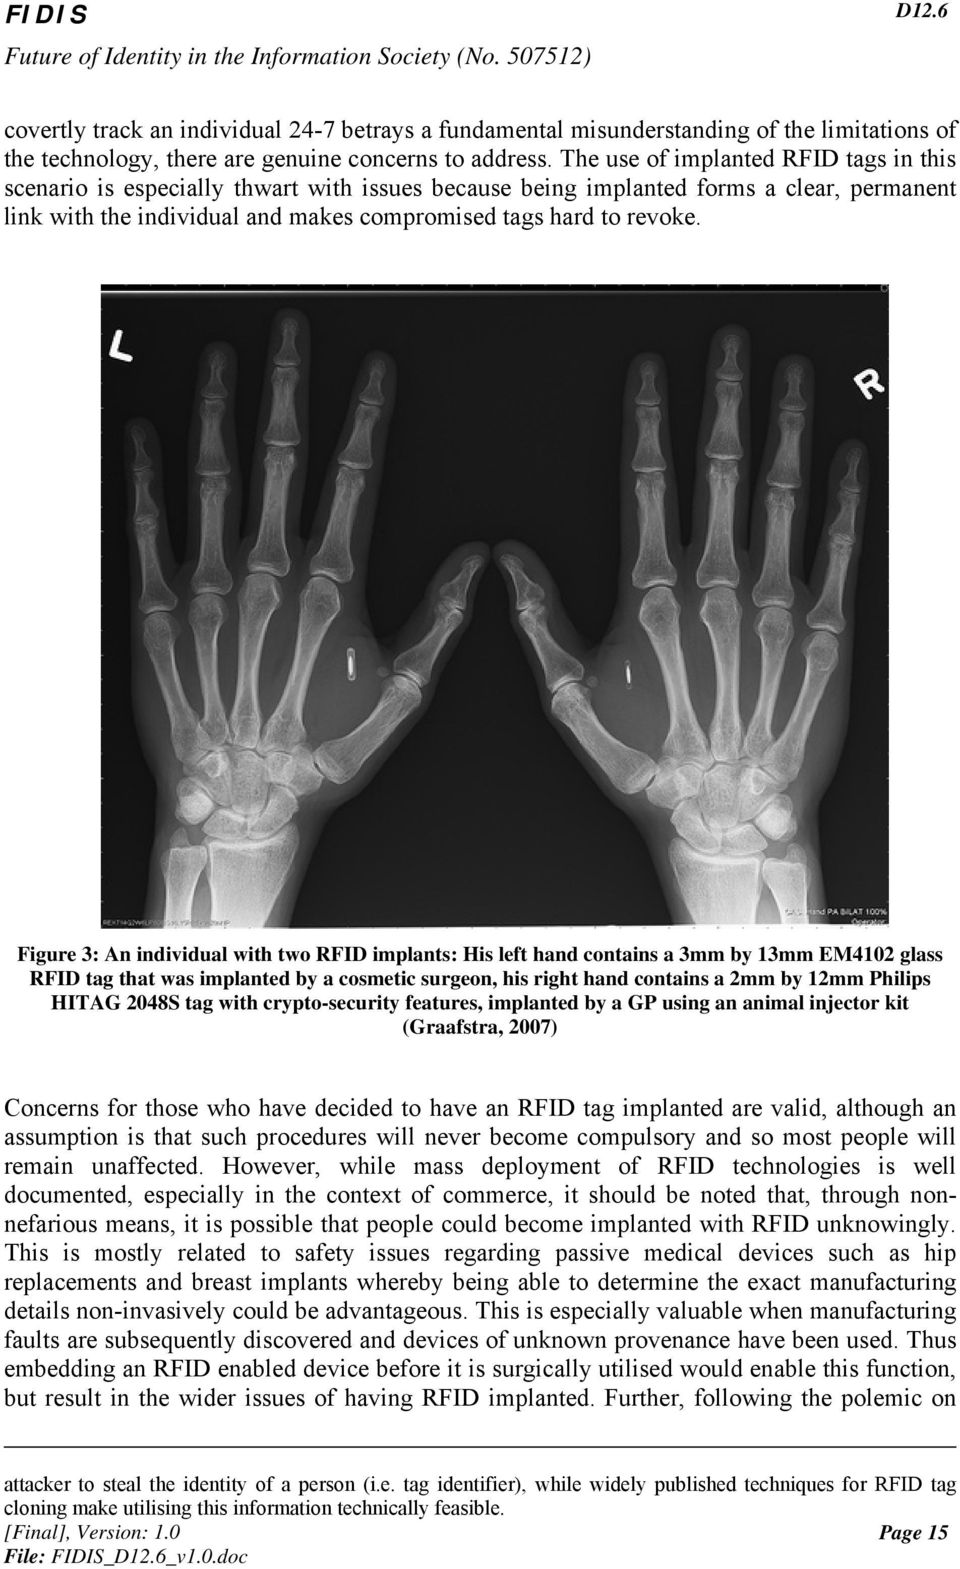 Figure 3: An individual with two RFID implants: His left hand contains a 3mm by 13mm EM4102 glass RFID tag that was implanted by a cosmetic surgeon, his right hand contains a 2mm by 12mm Philips